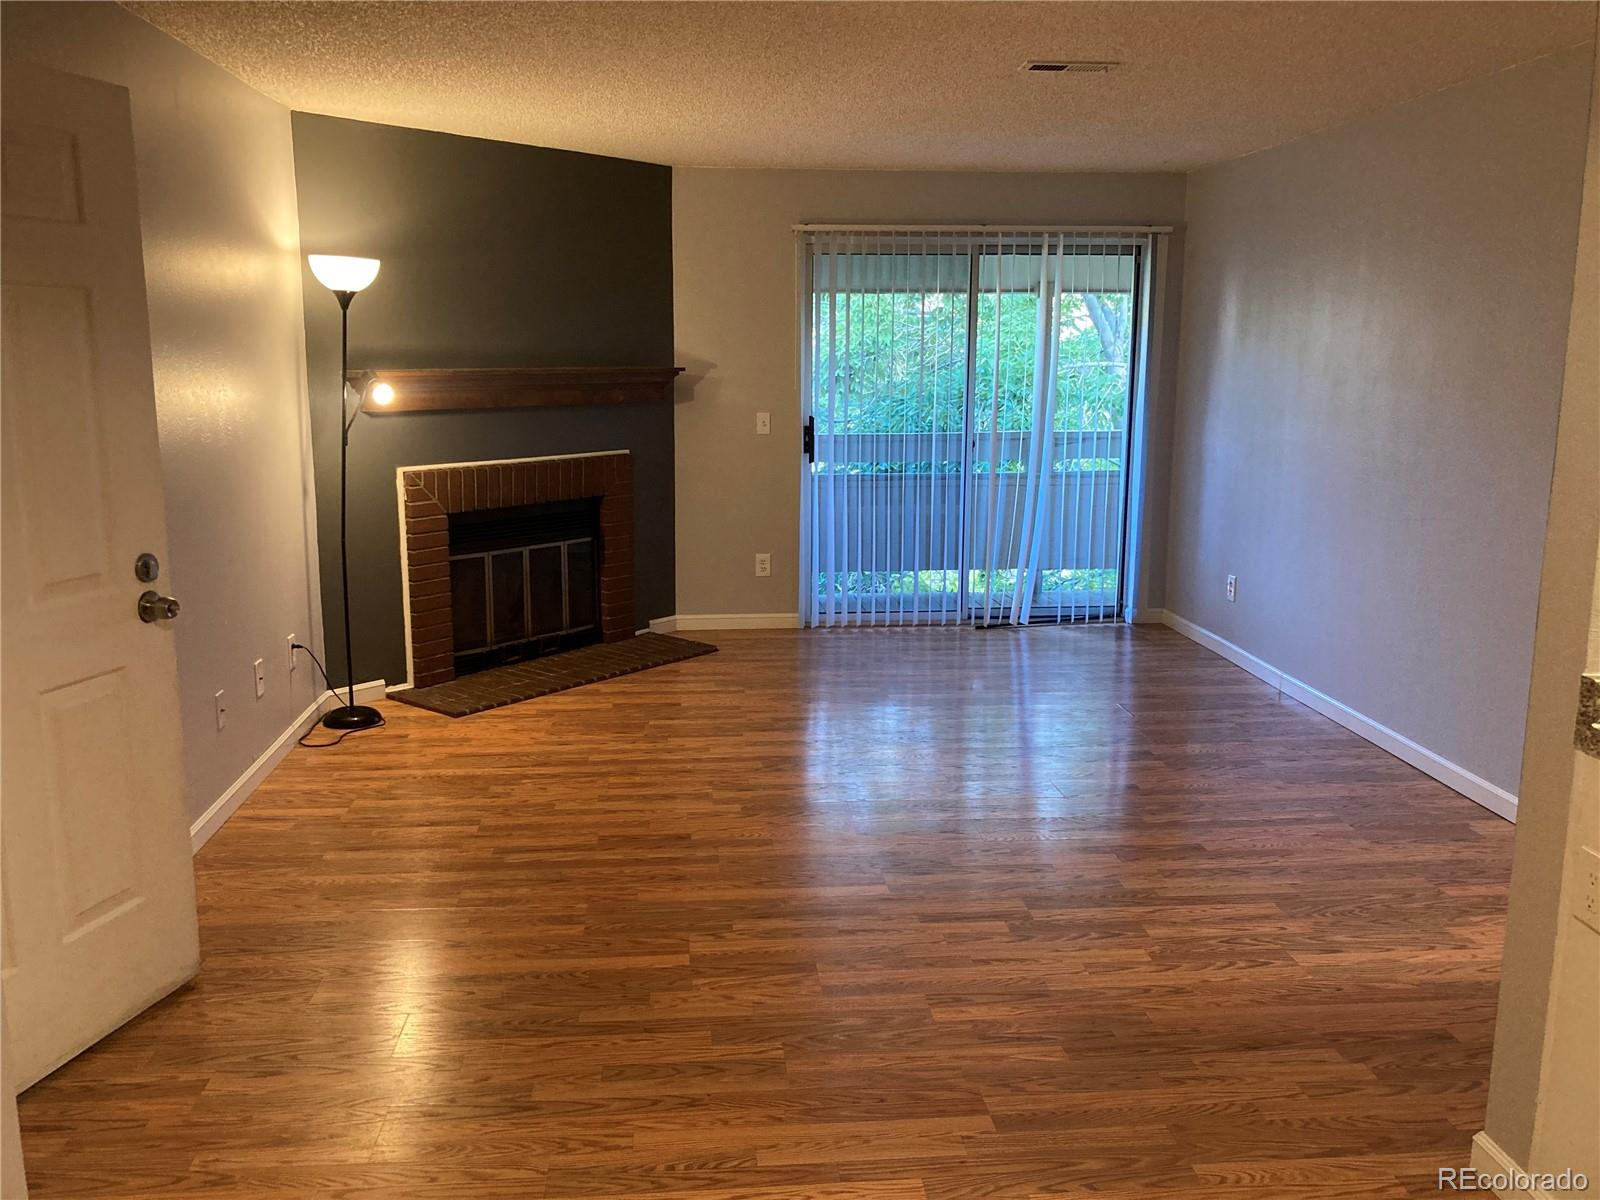 Beautiful updated 2 bed 2 bath unit on third floor with balcony! Washer and dryer included in the unit, central A/C and much more.  Nice swimming pool with garden area in the complex. Close to everything, easy access to highway and shopping. At this price, it won't last, excellent opportunity!  Come see it before it's gone!